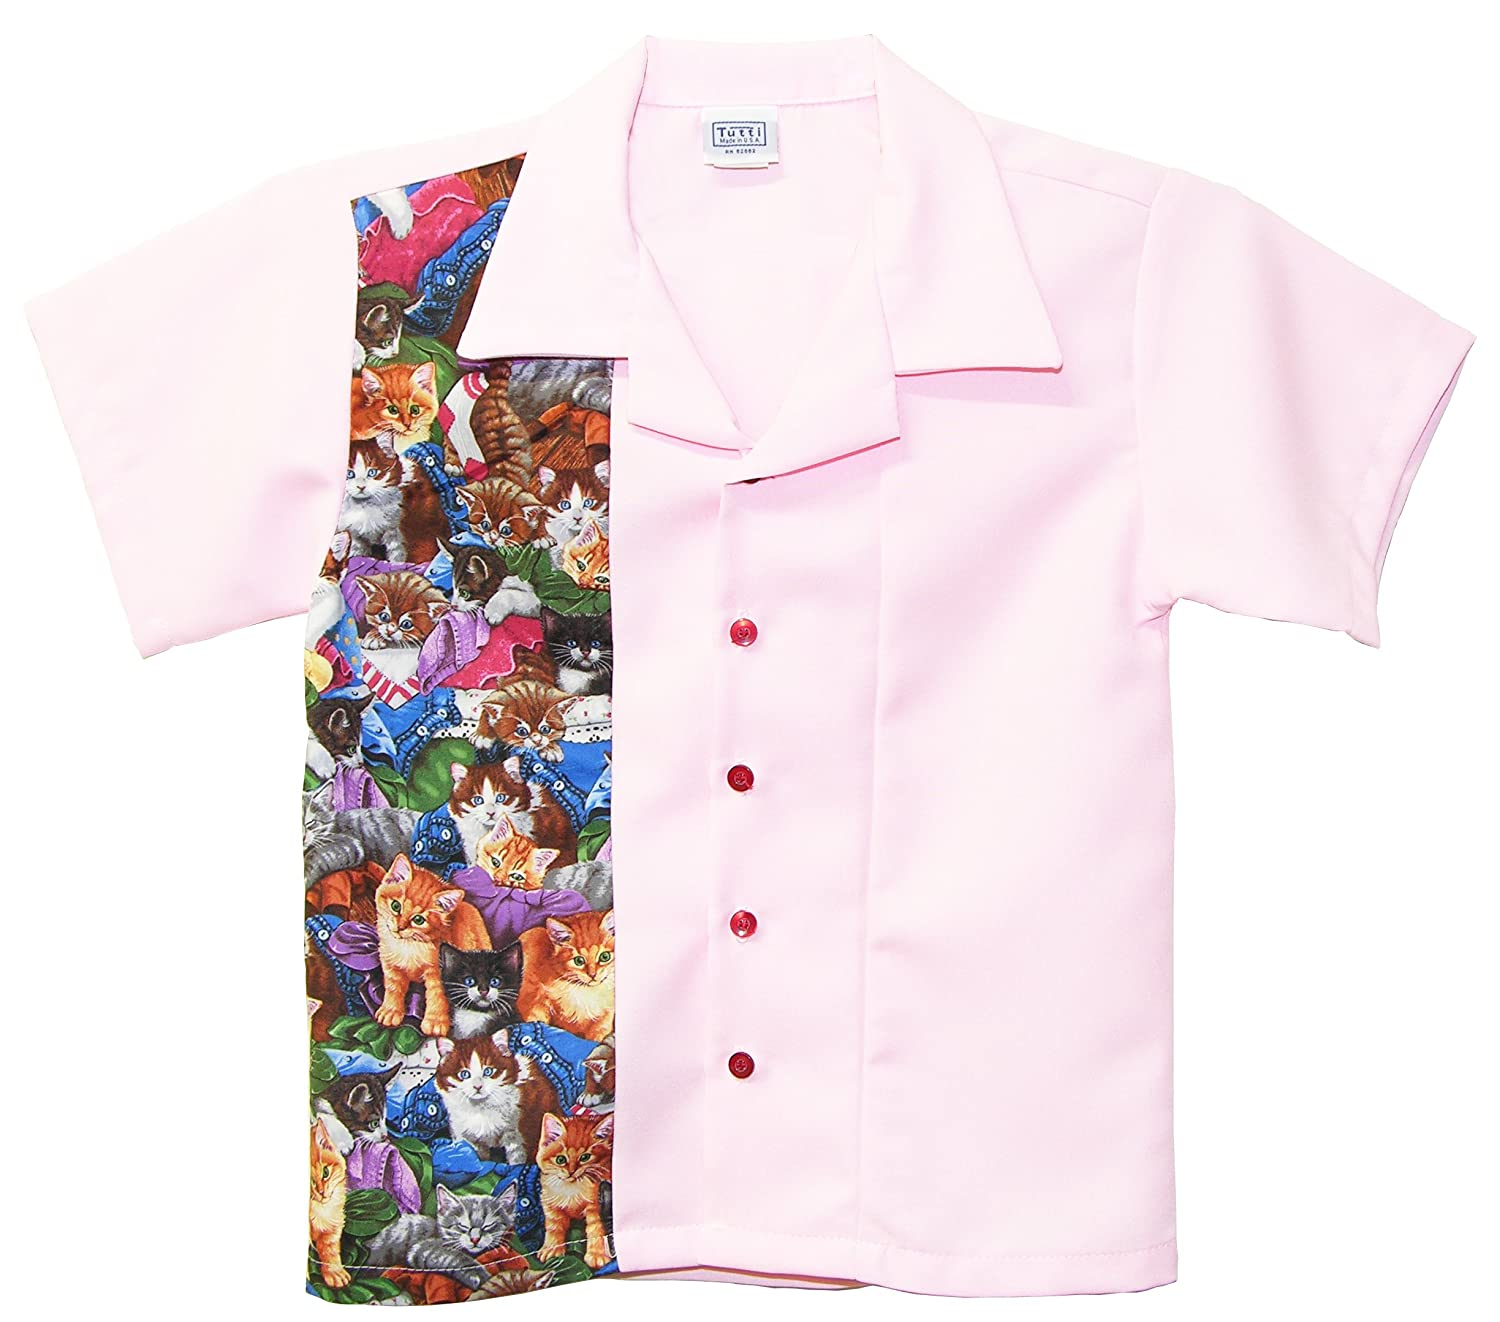 Tutti SHIRT ボーイズ B07FQF15R8  MEDIUM 4-5 Yrs Old